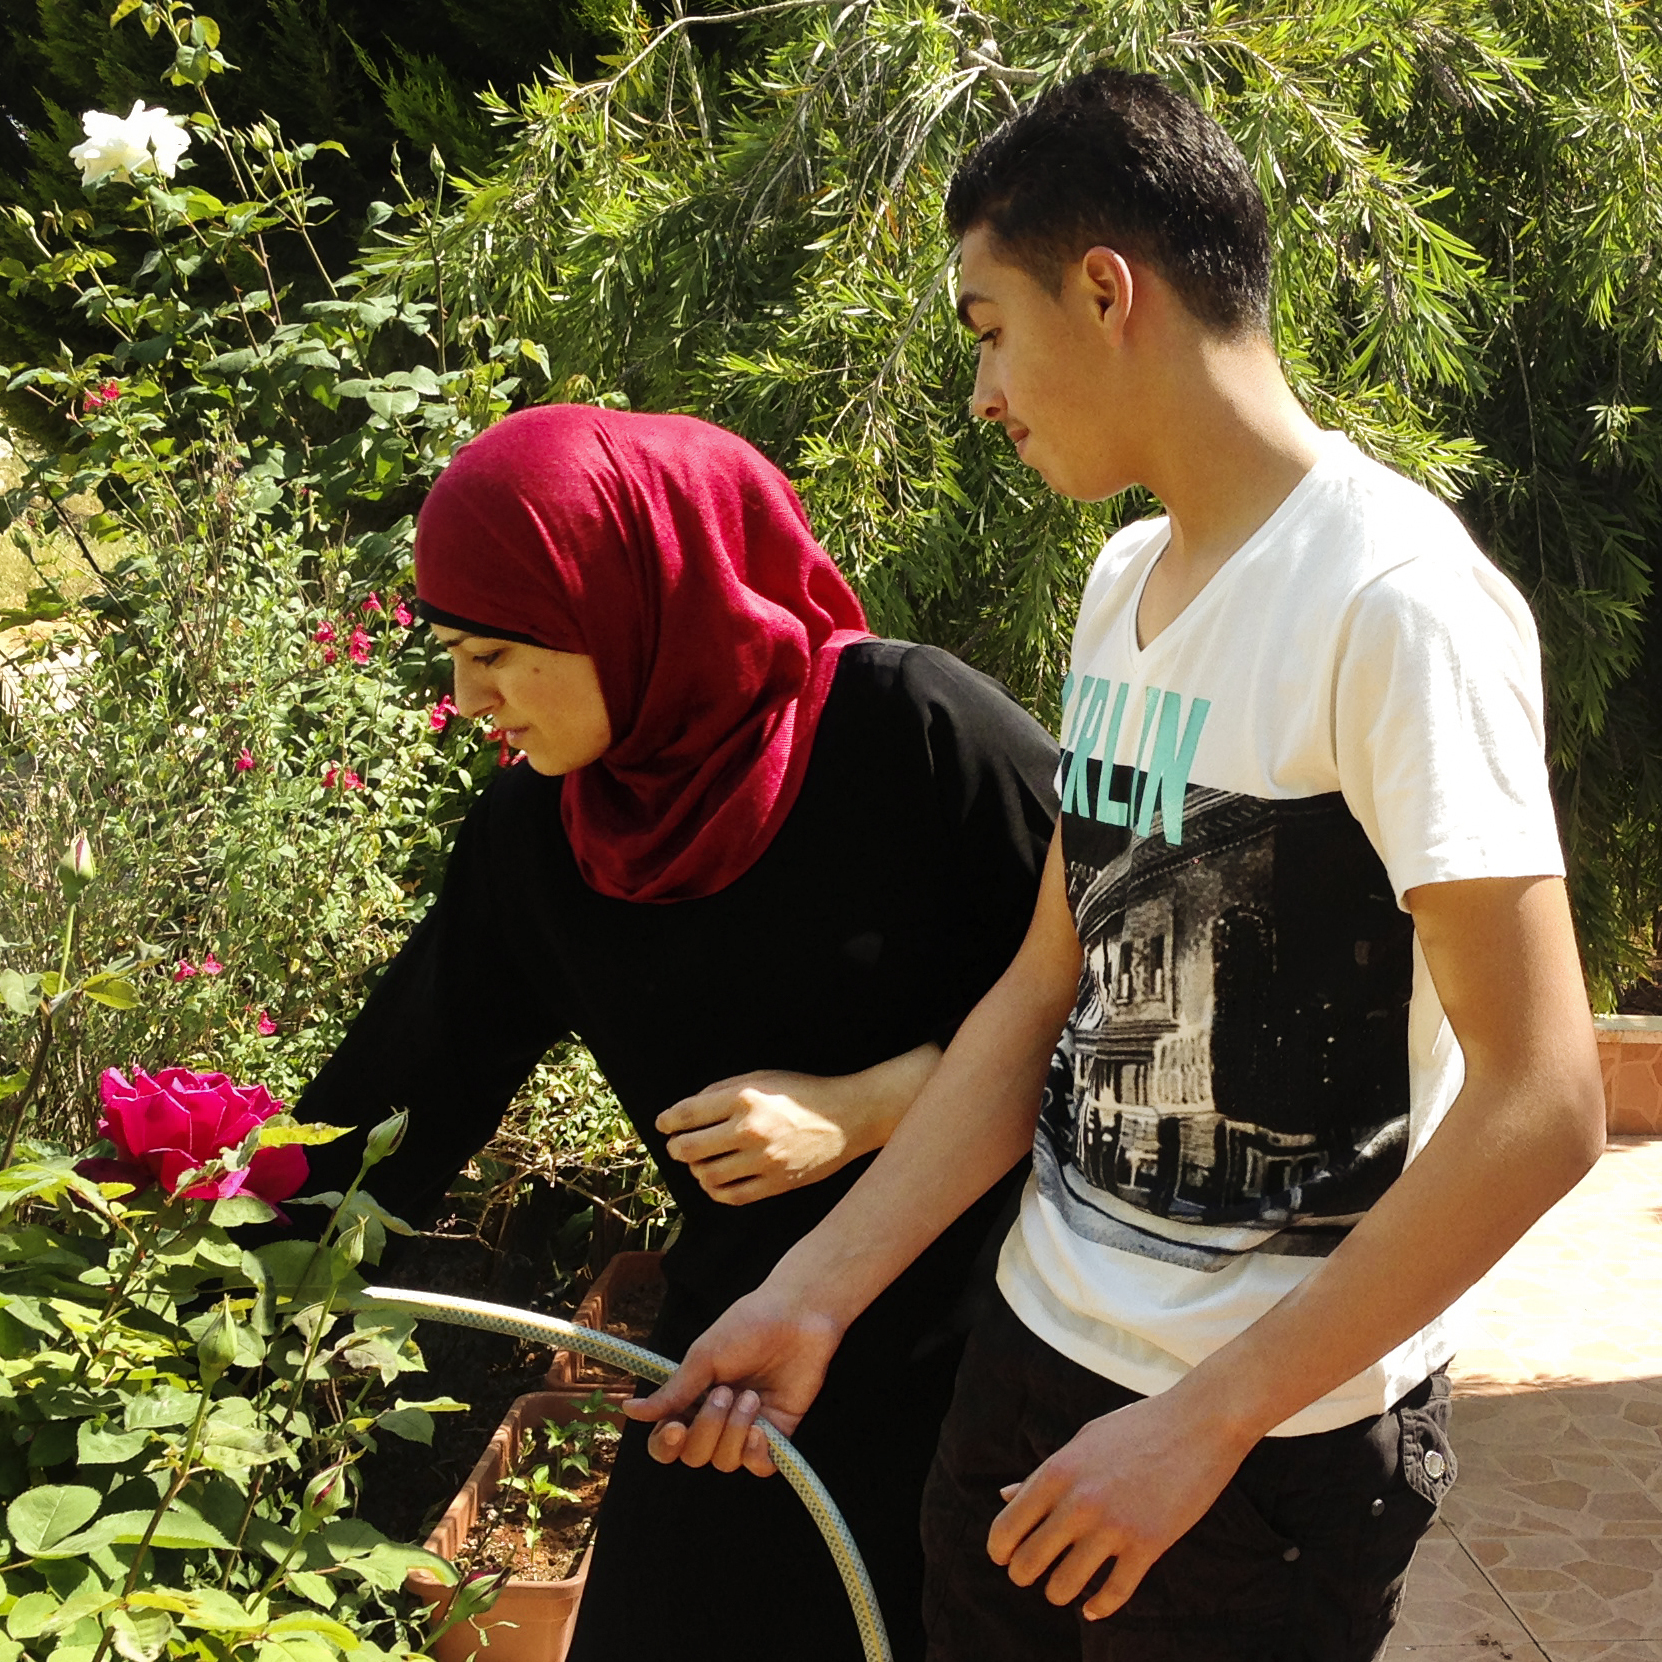 Israeli soldiers came to the home of the Hammed family at 2 a.m. and took 17-year-old Tareq Hammed away. Accused of throwing rocks at Israeli soldiers, he was released after 17 days, the result of a plea bargain and a four-year parole deal. Here, Tareq waters the roses in his family's garden after his release.